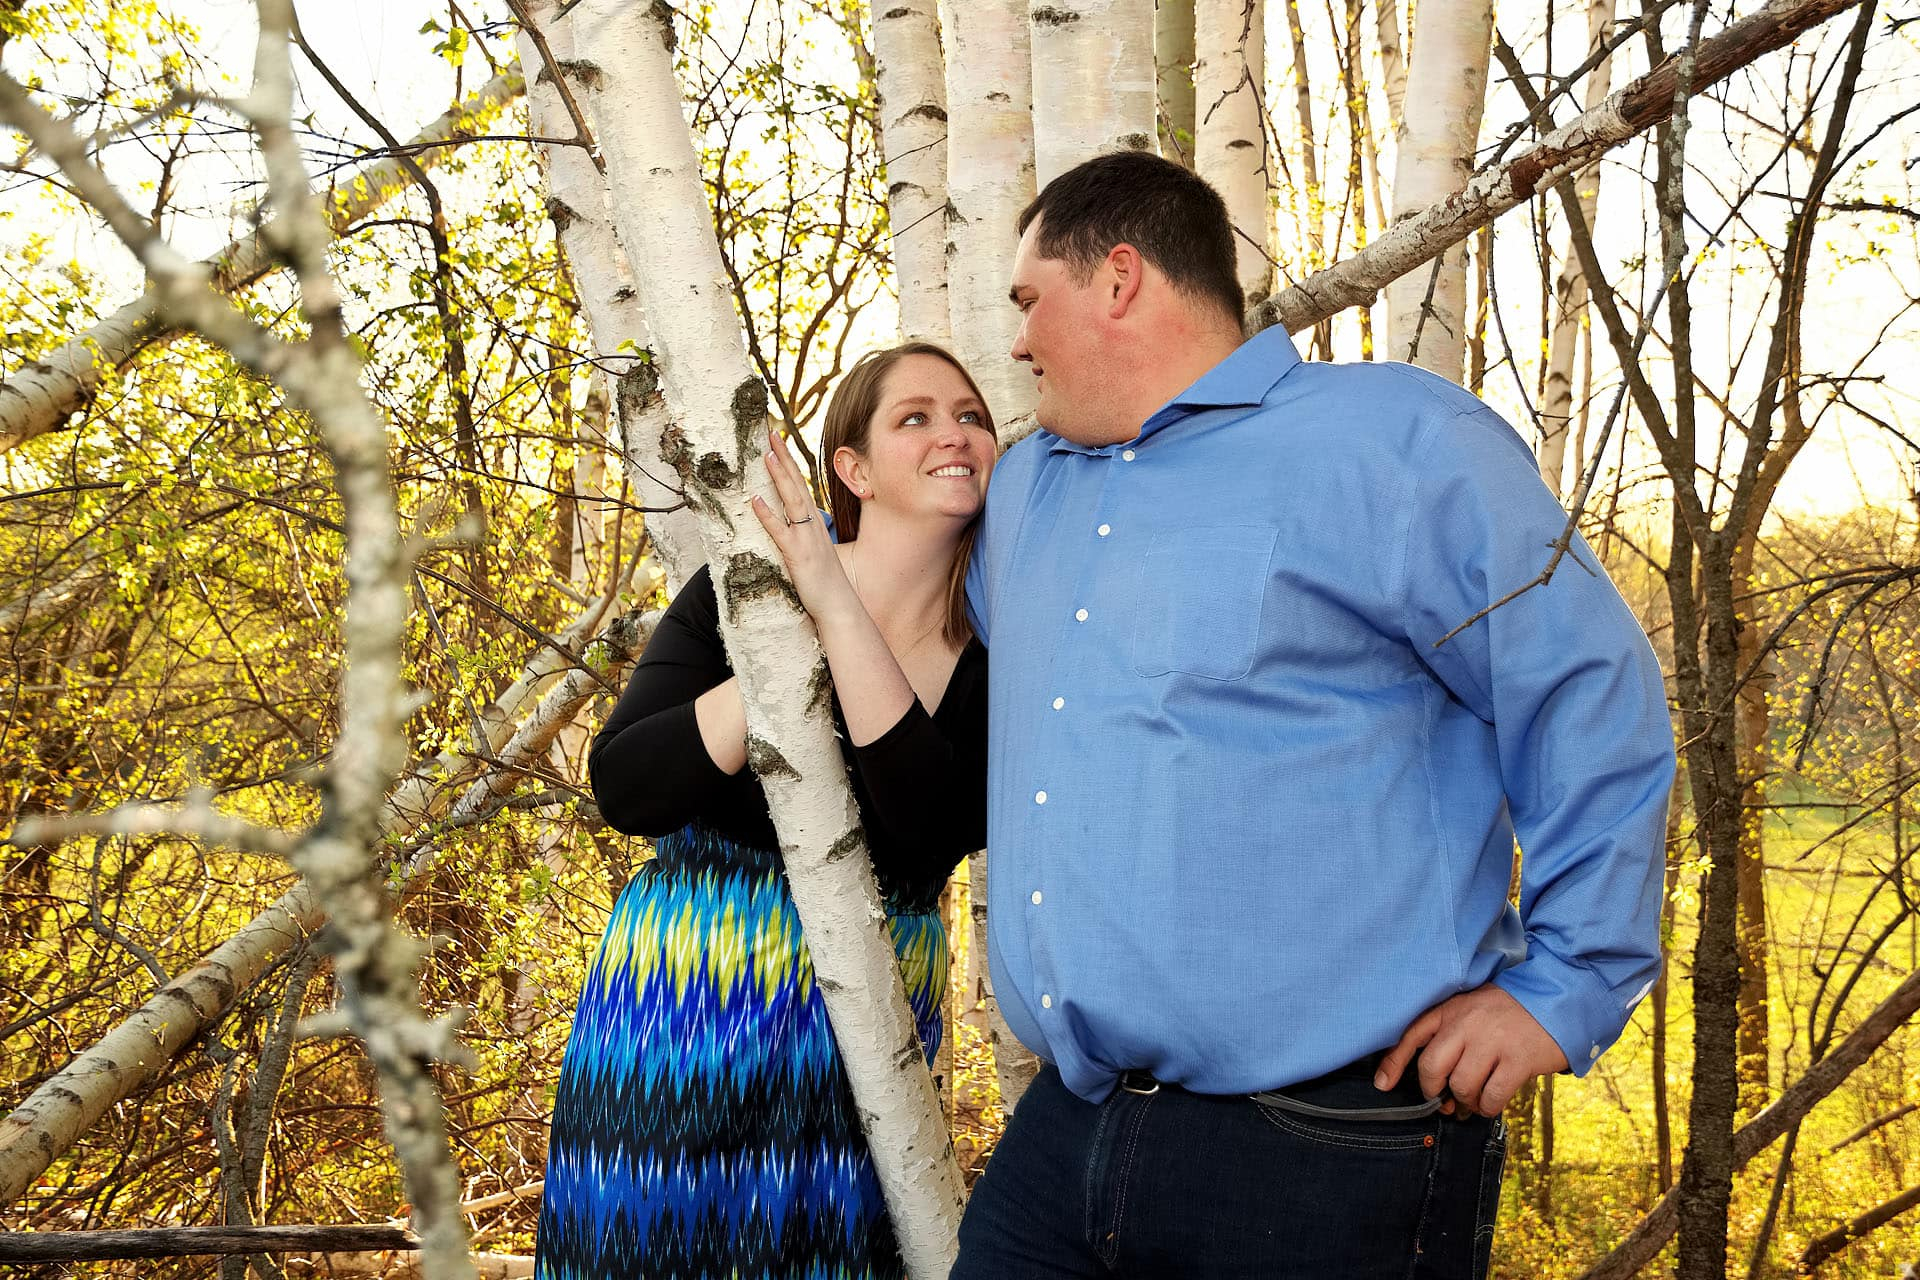 keene photographer engagement session with poplars and sunset